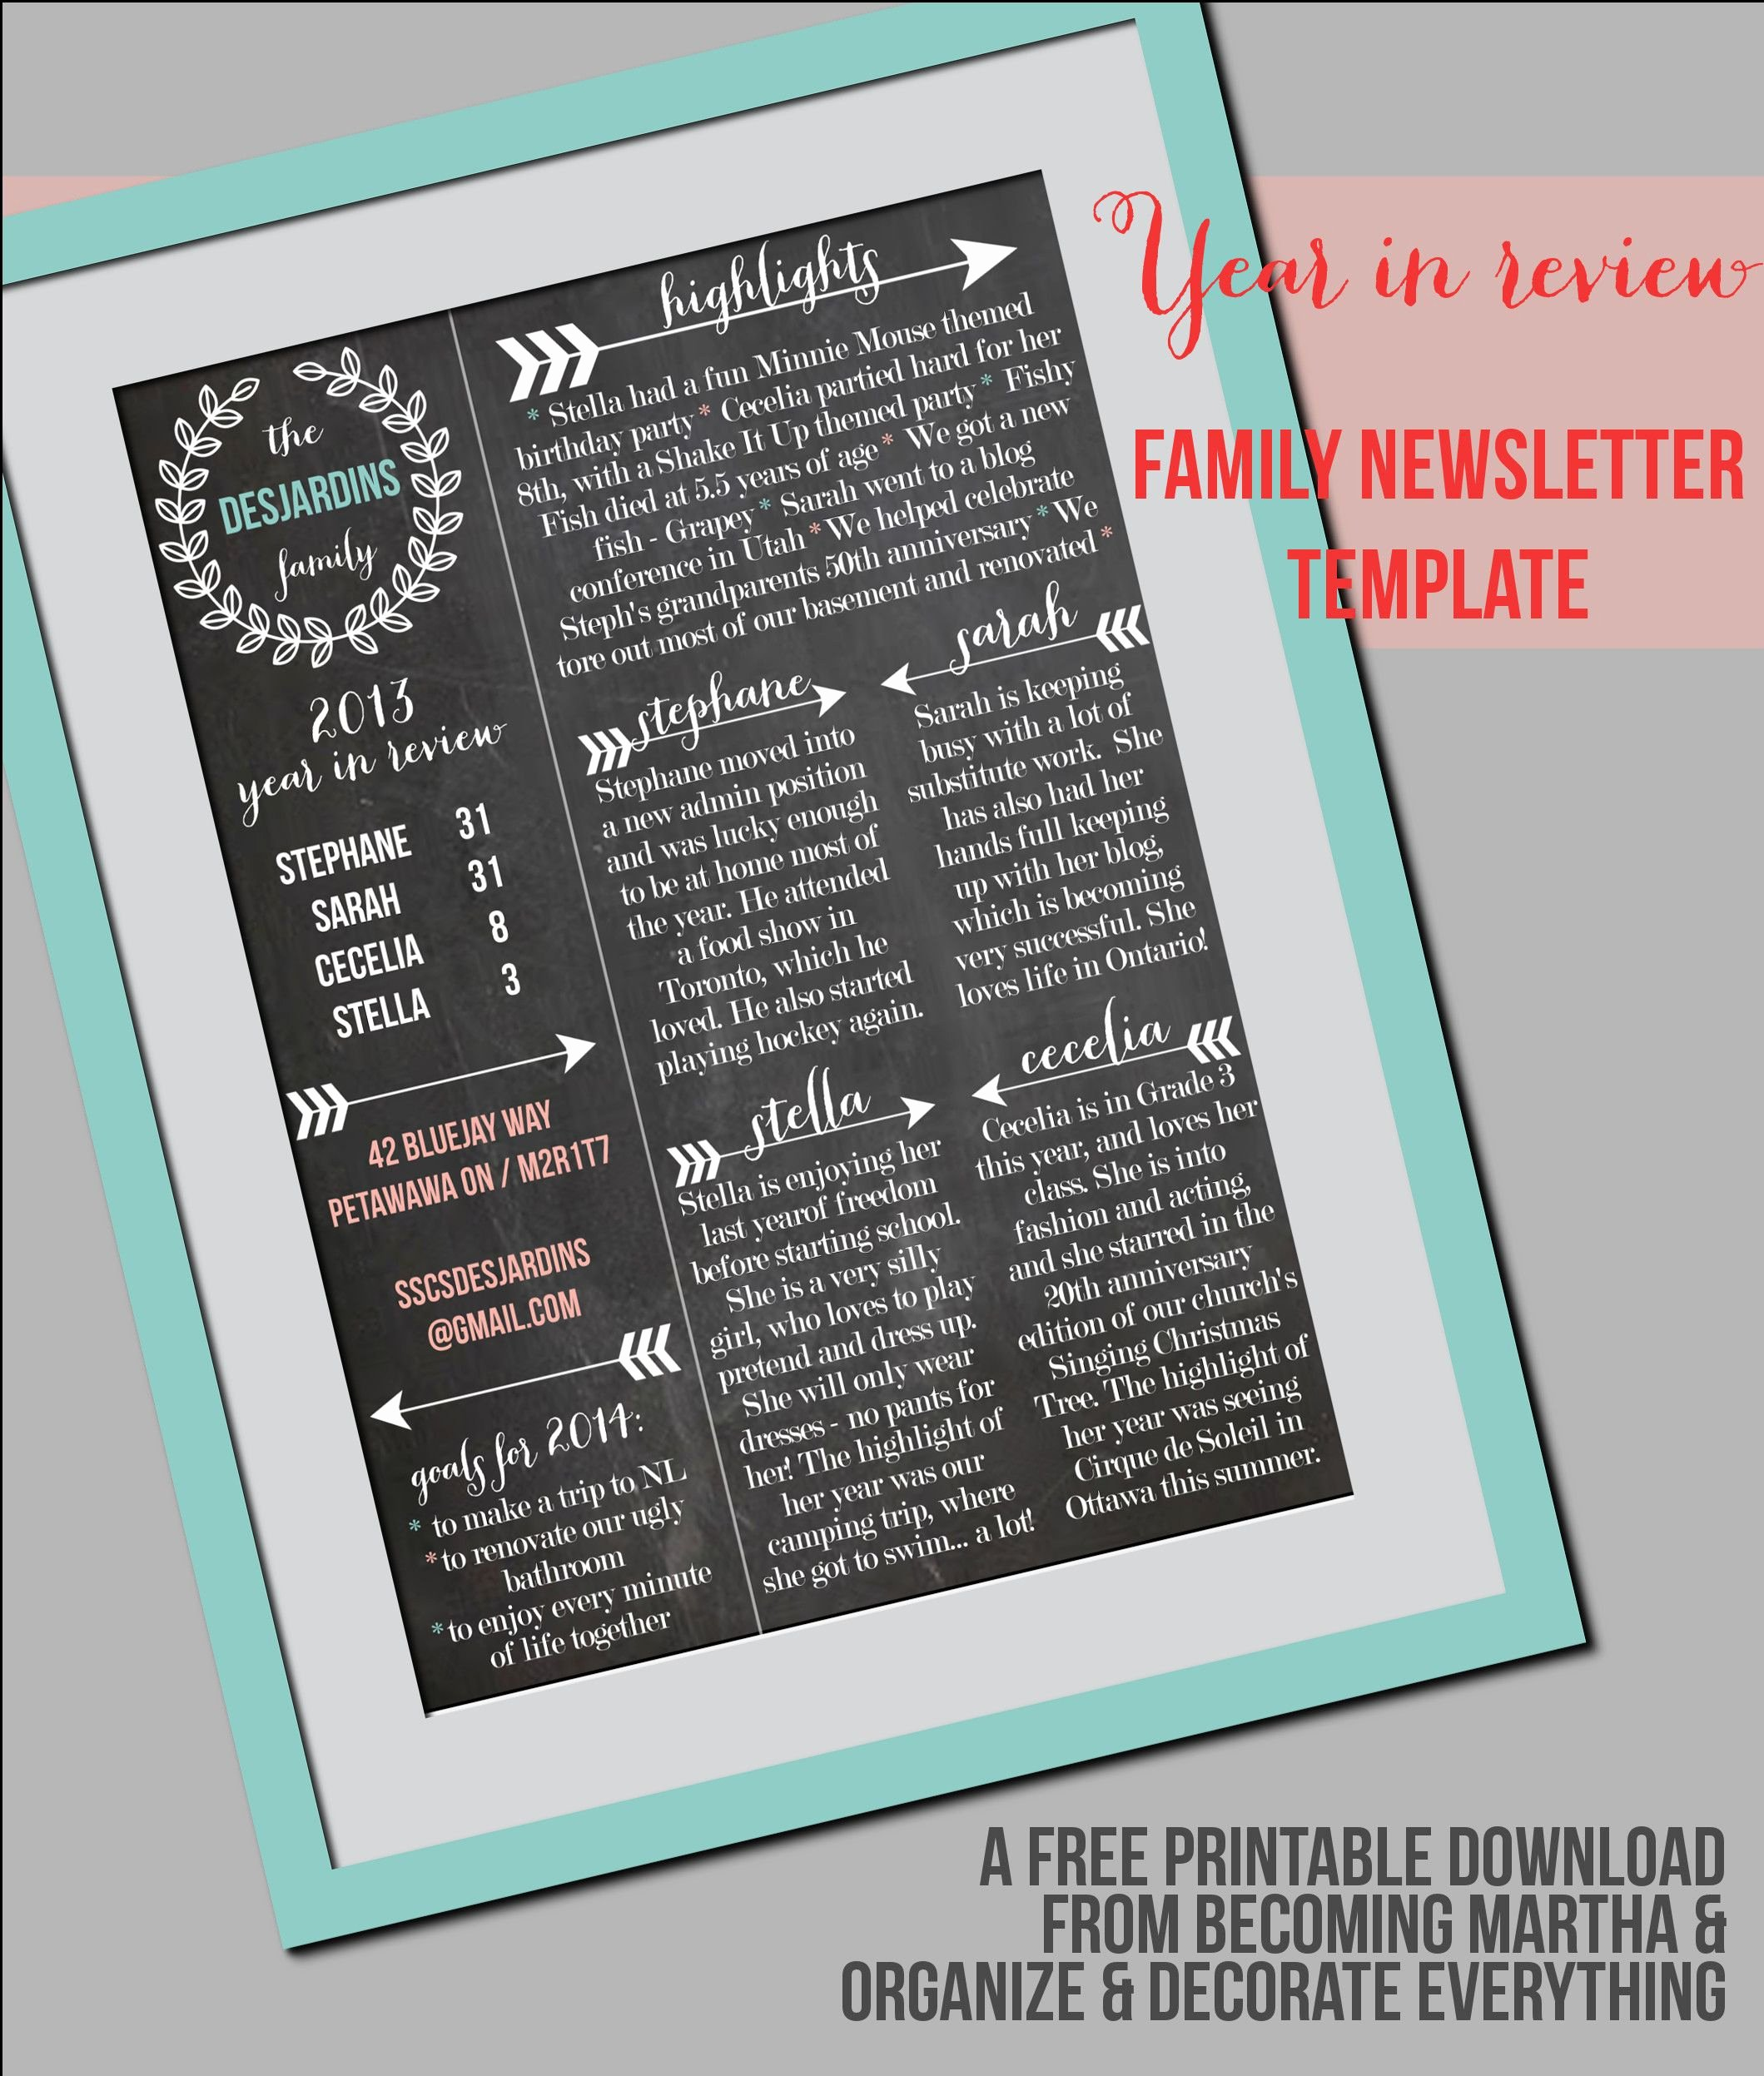 Free Printable Newsletter Templates Best Of Family Newsletter Template Christmas